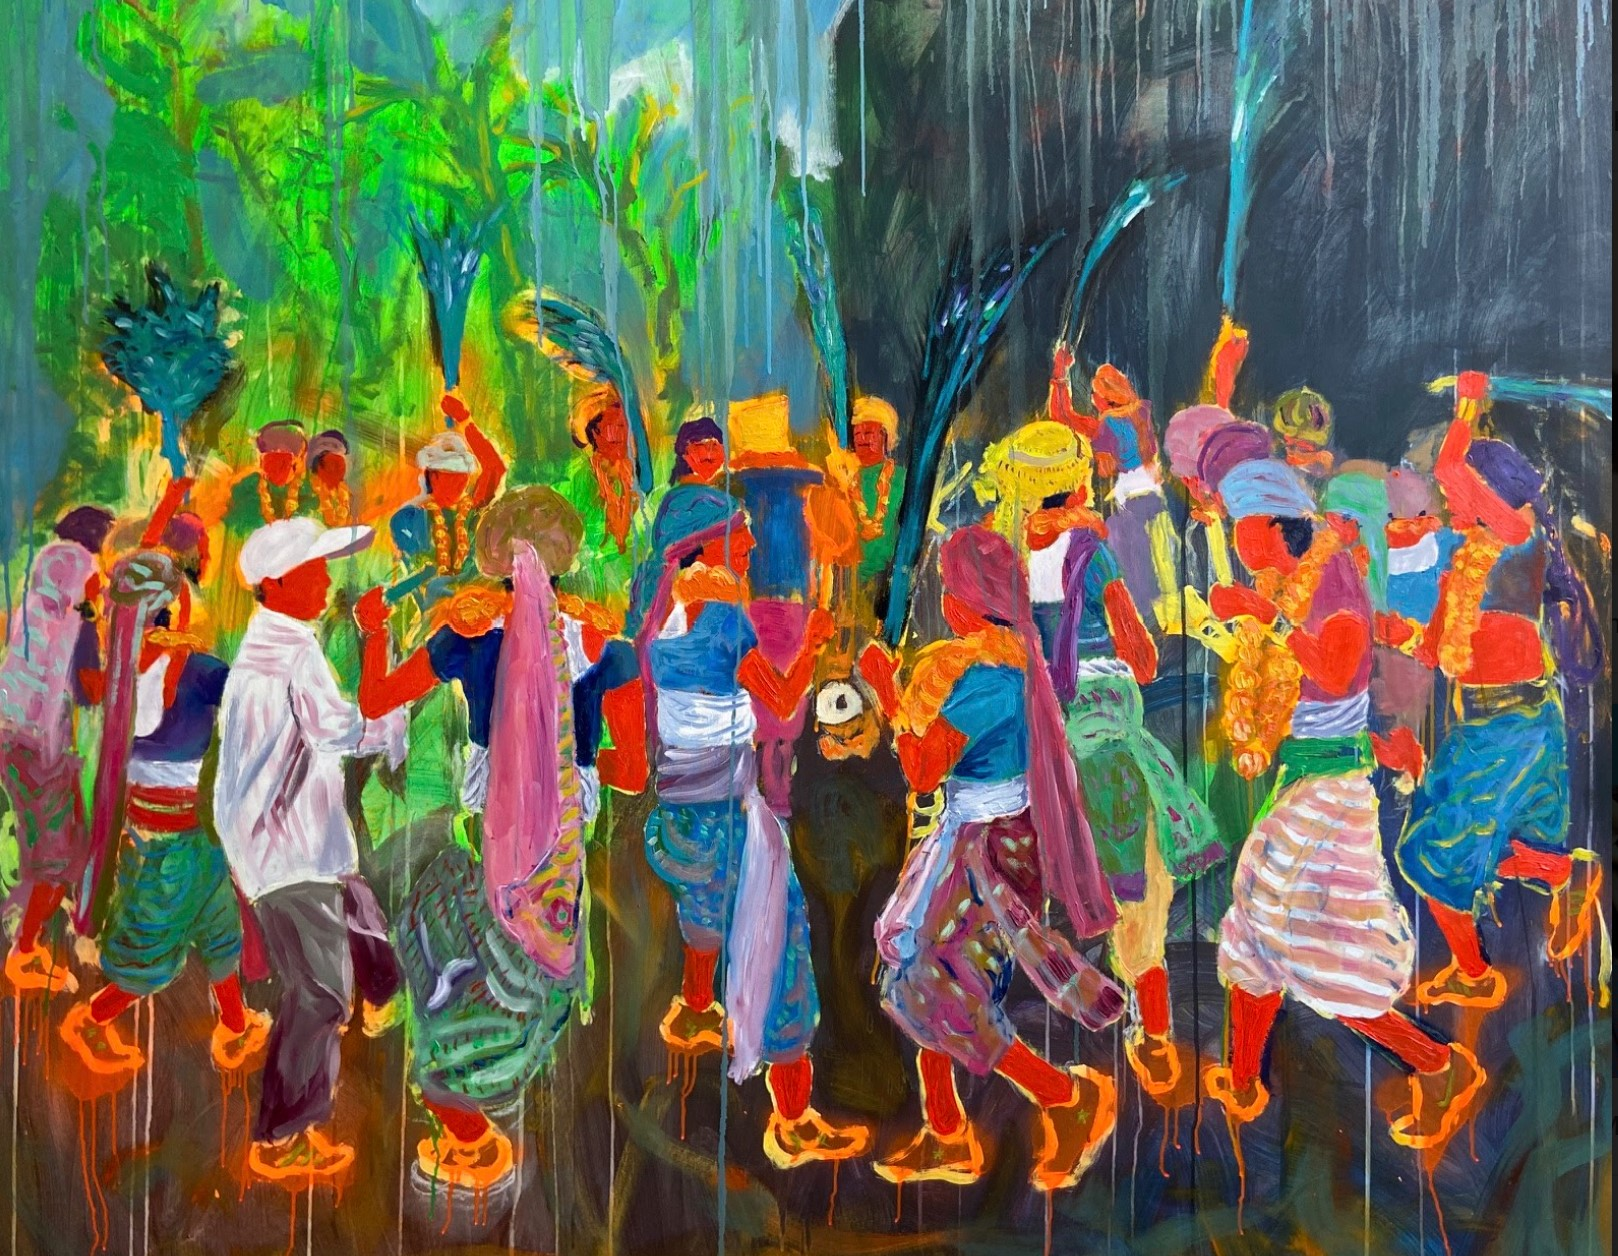 Colourful painting of a group of people dancing and celebrating